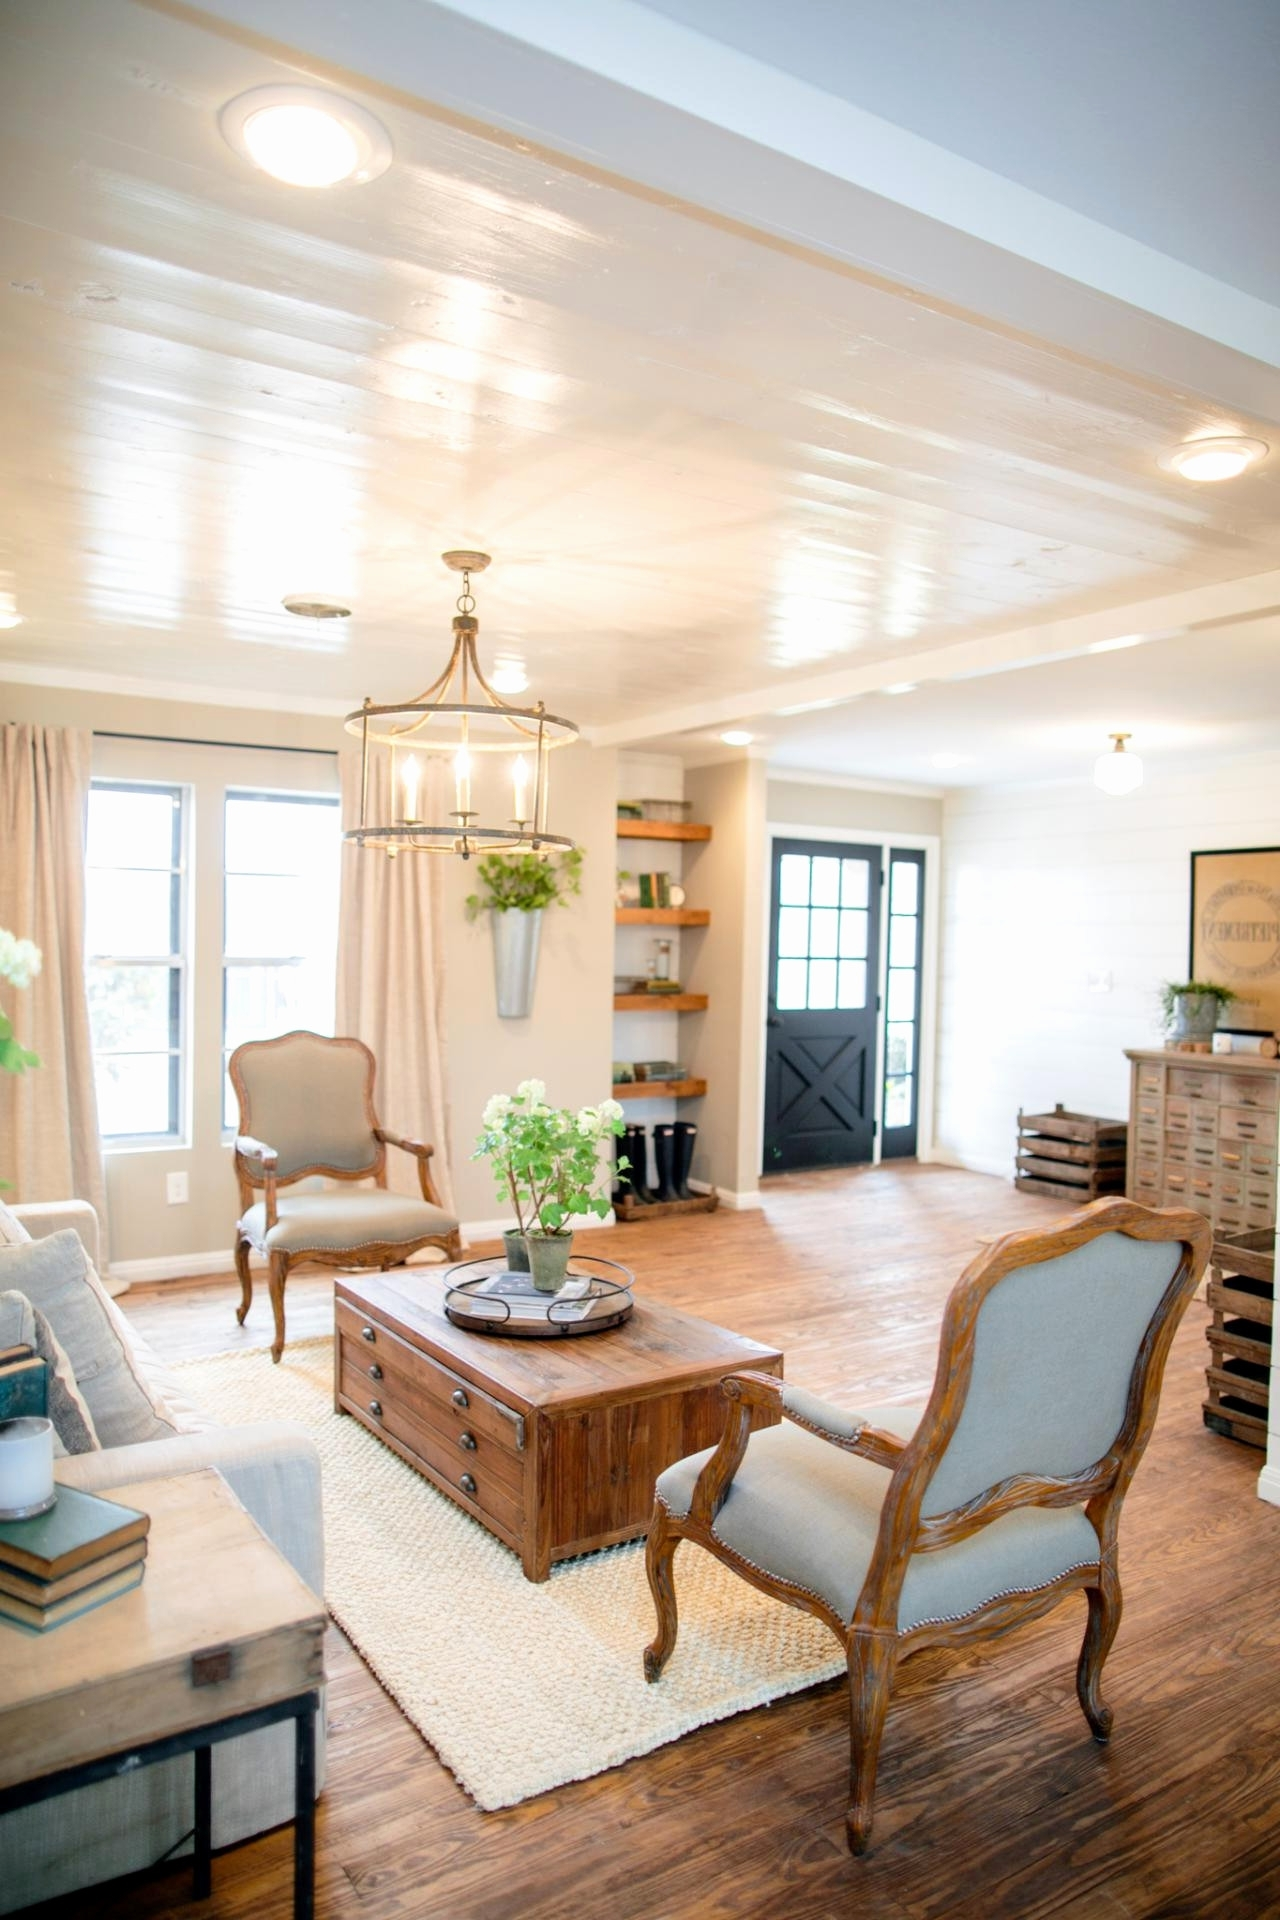 Joanna Gaines Outdoor Ceiling Fans Within Latest Ceiling Fan Direction For Vaulted Ceilings Awesome 9 Design Tricks (View 12 of 20)